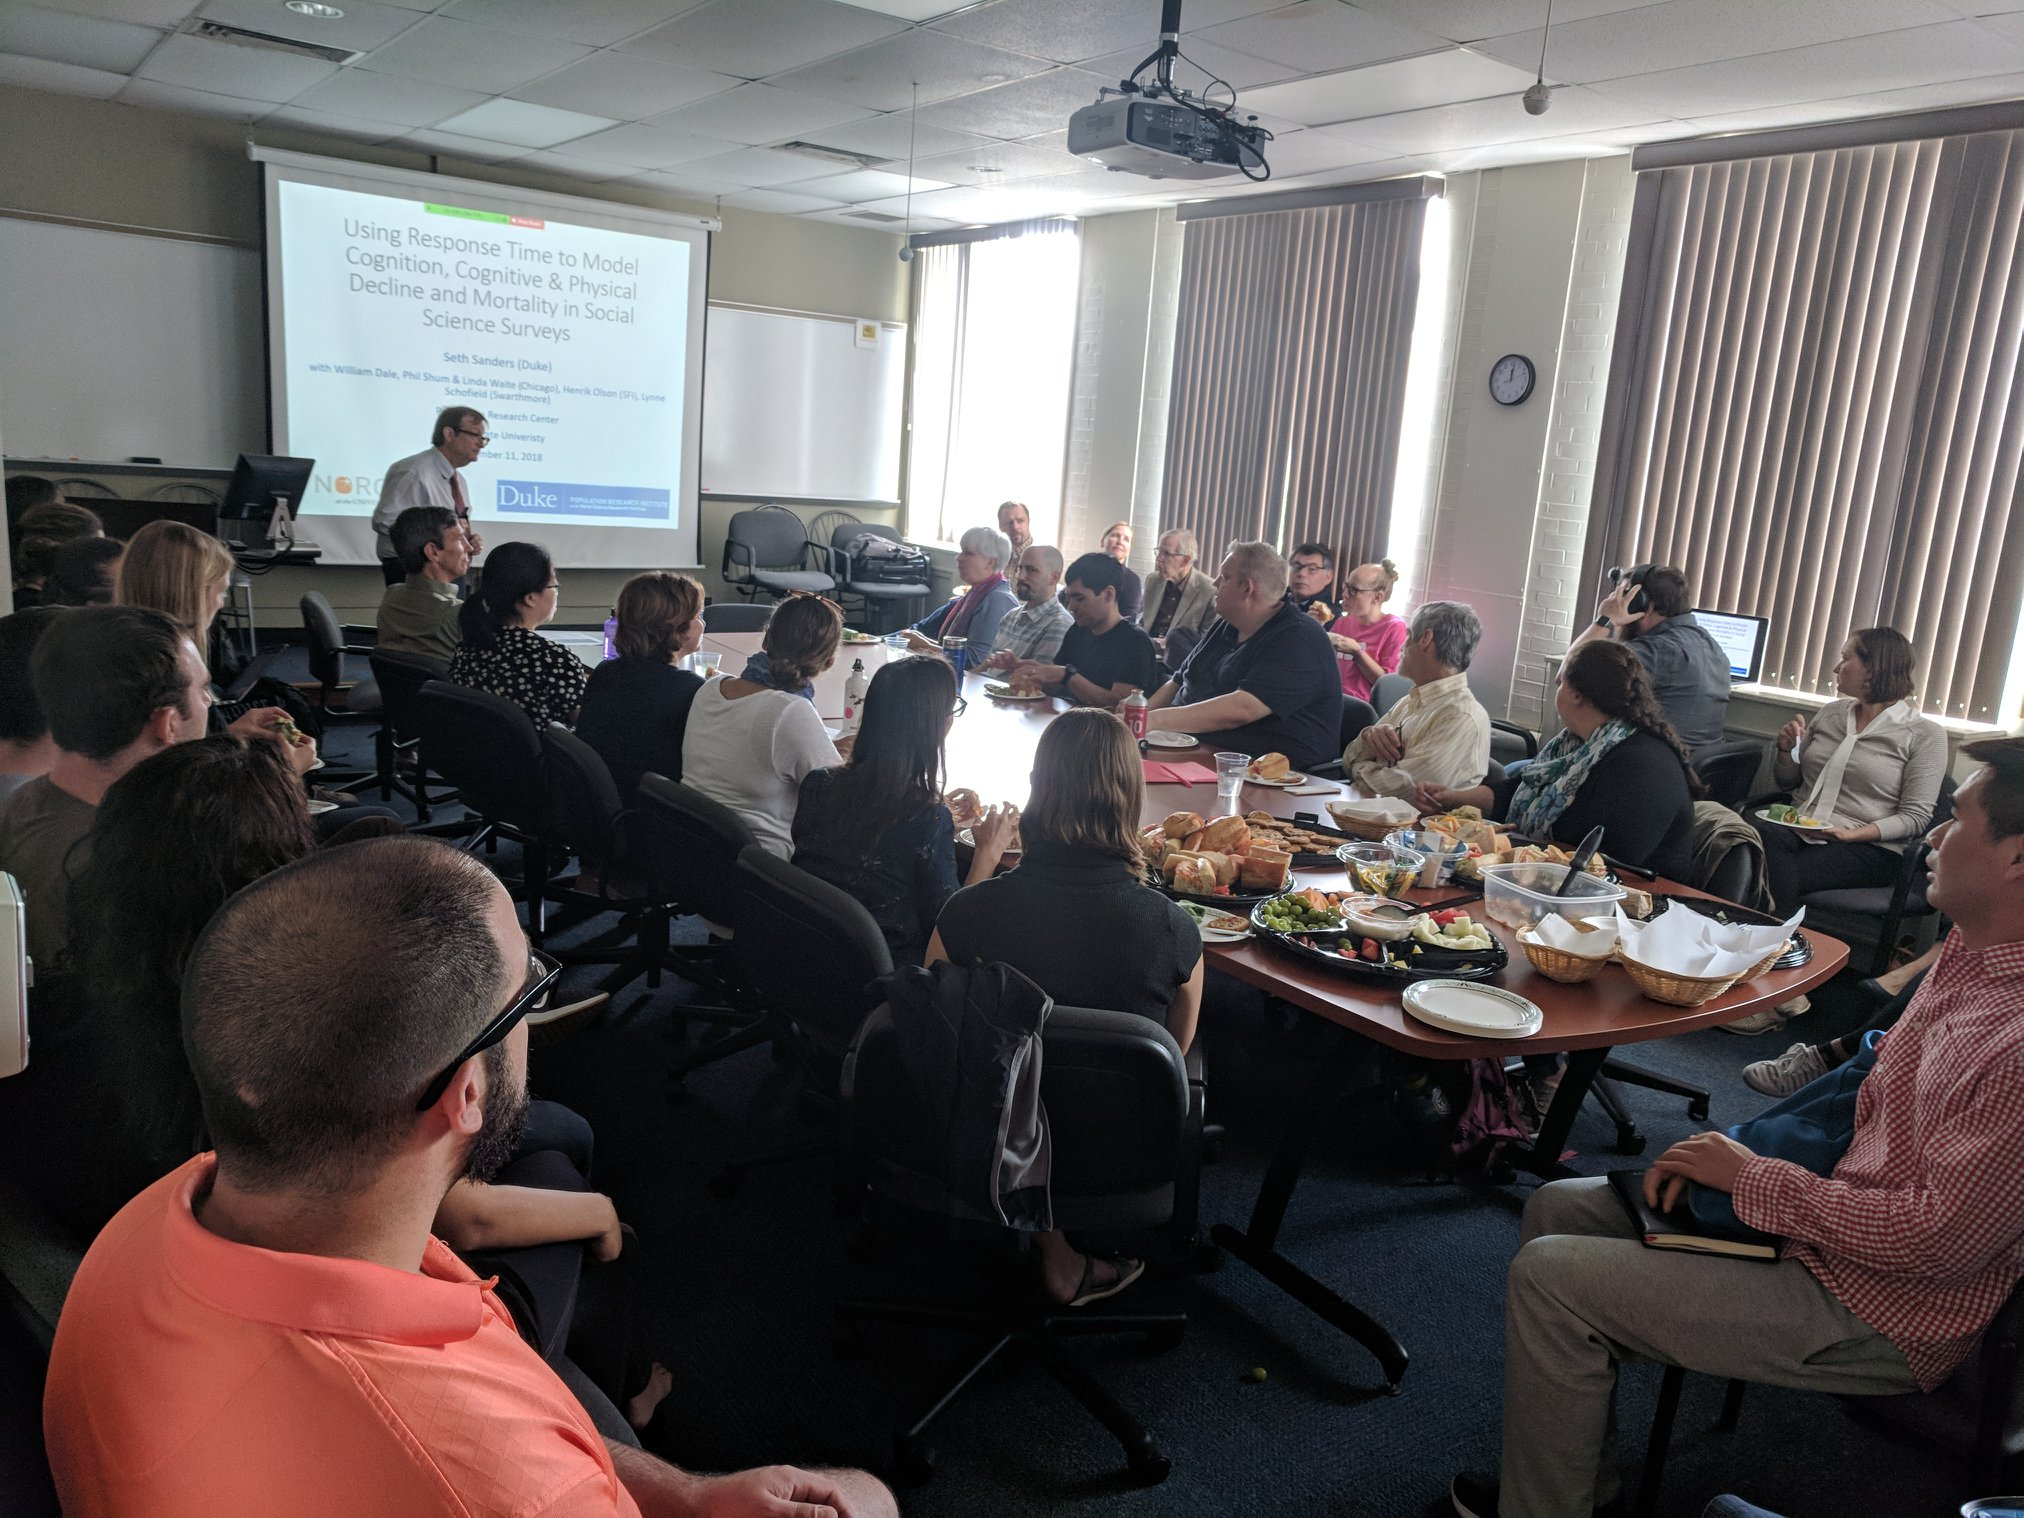 Photo taken during a Brown Bag presentation with a presenter showing a PowerPoint, a room full of people listening, and provided food on the table.